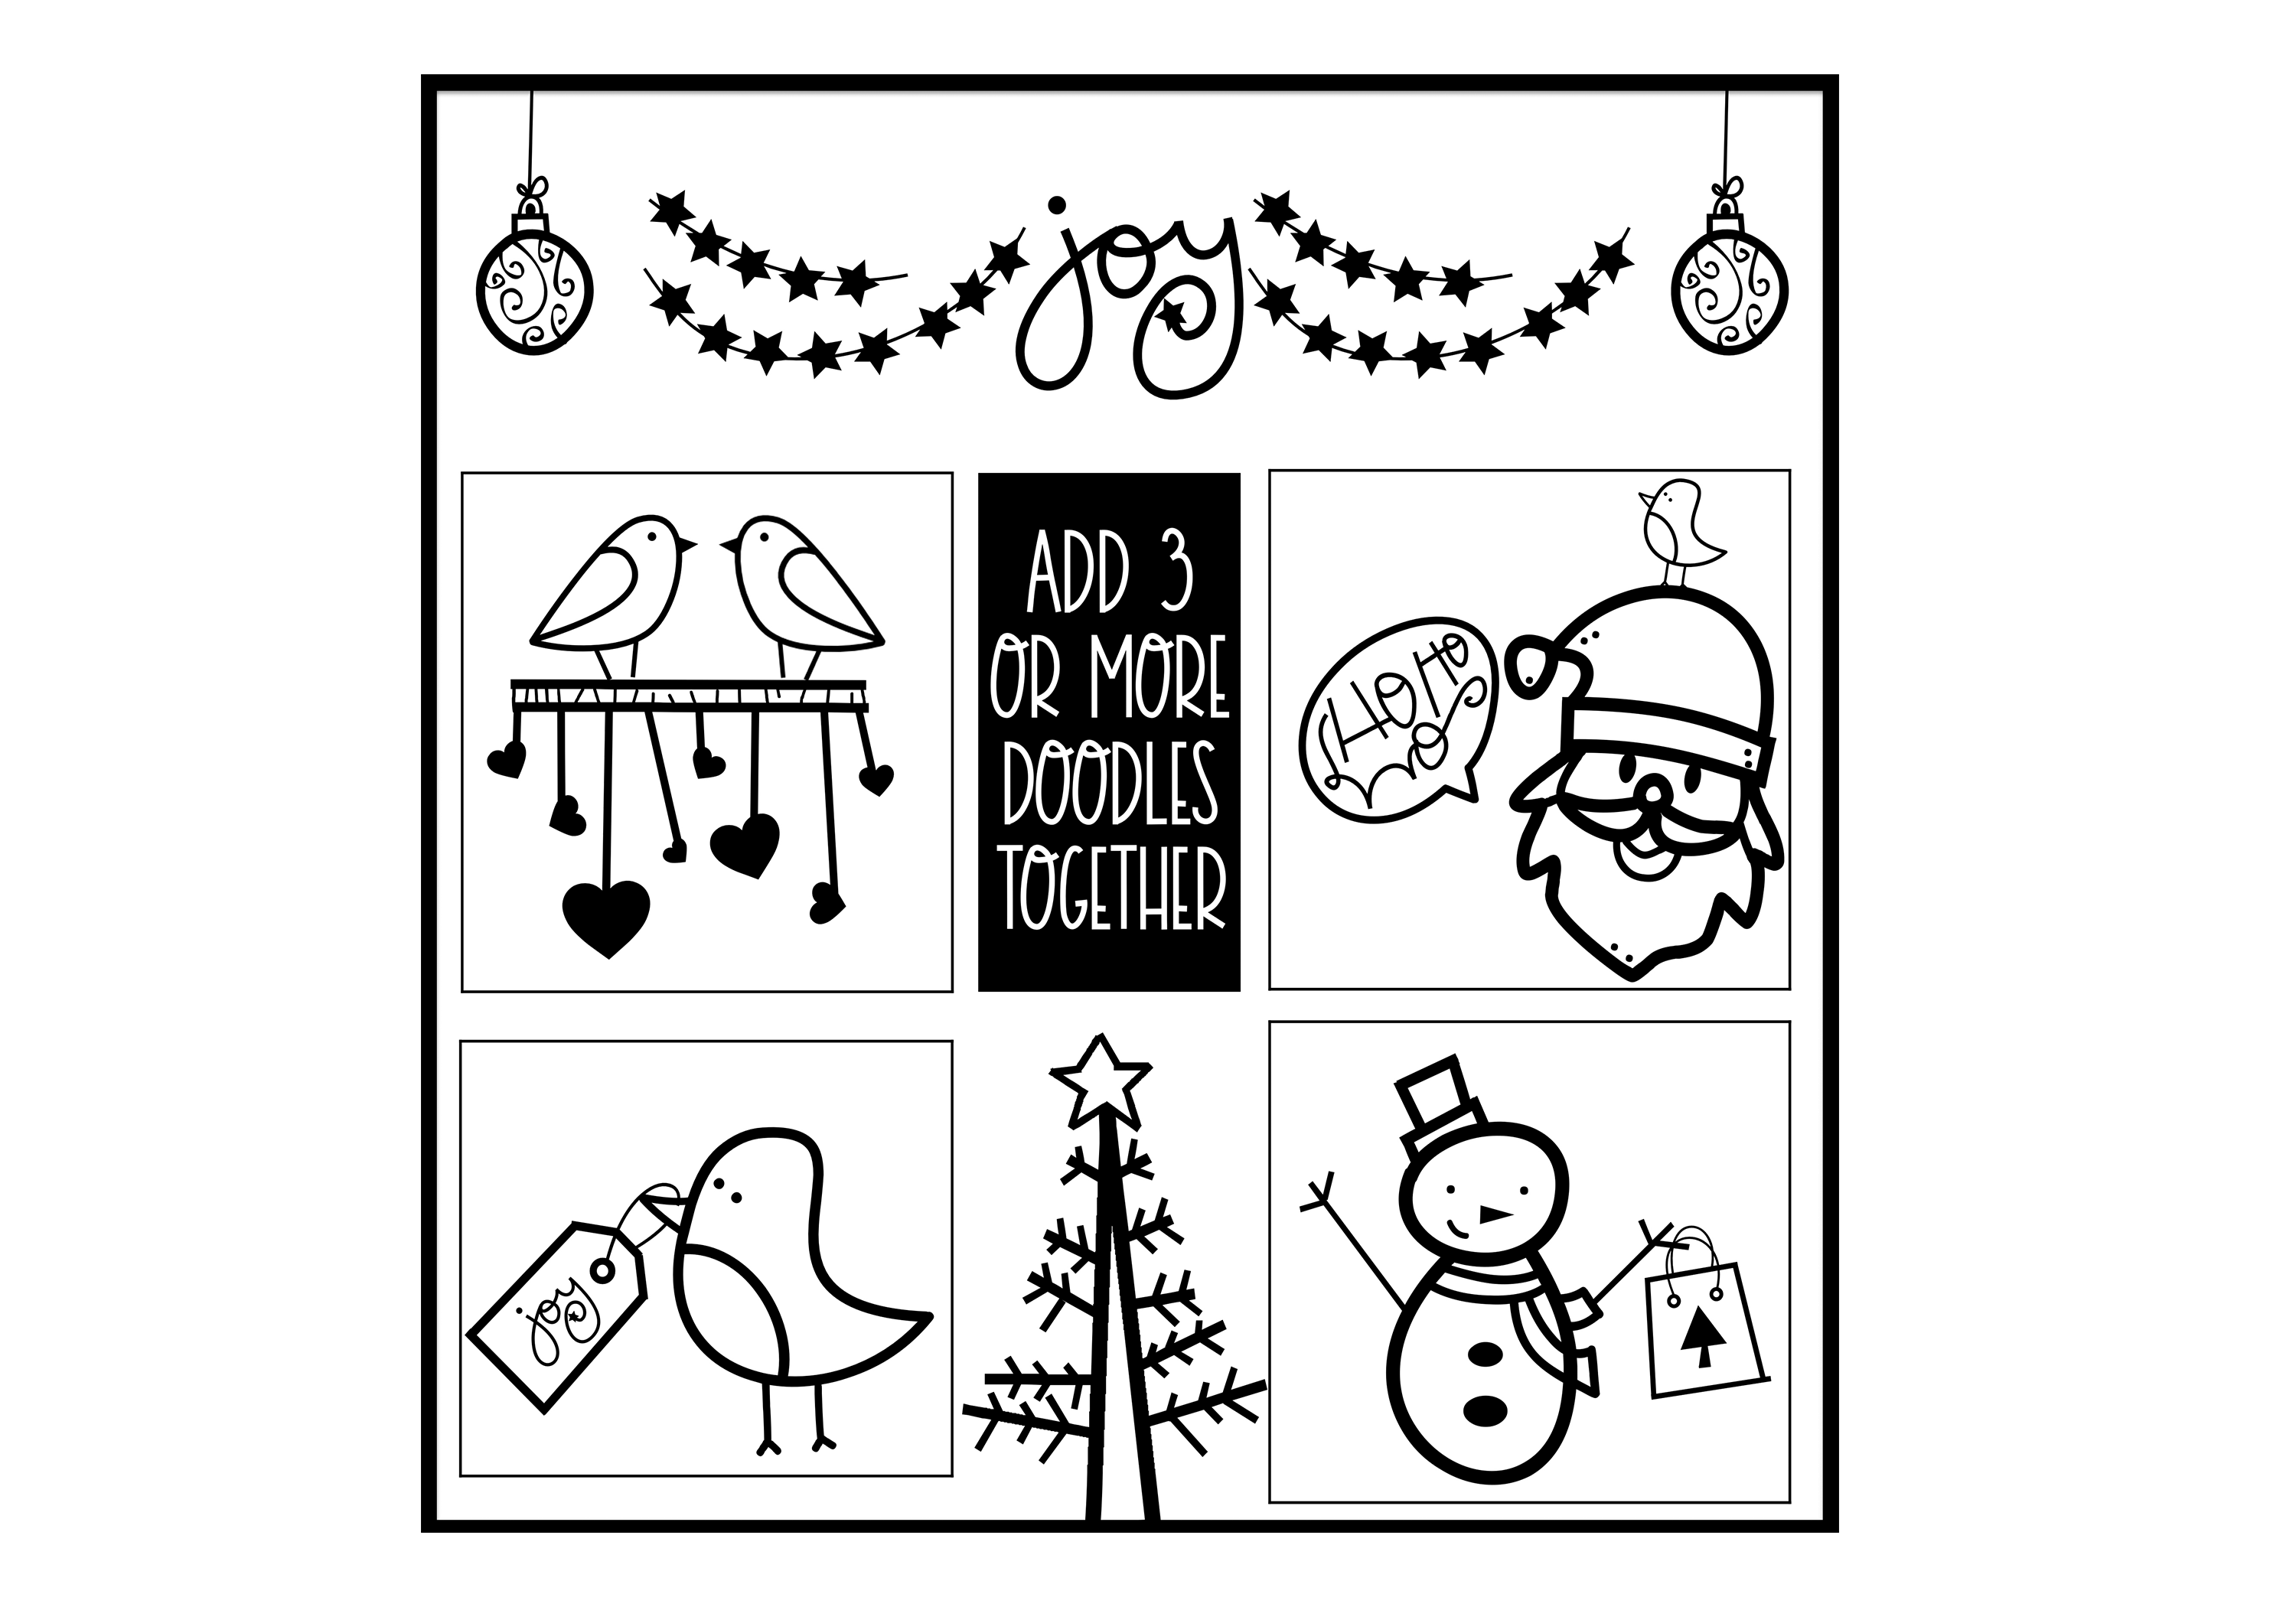 North Pole - A Christmas / Winter Doodles Font example image 5